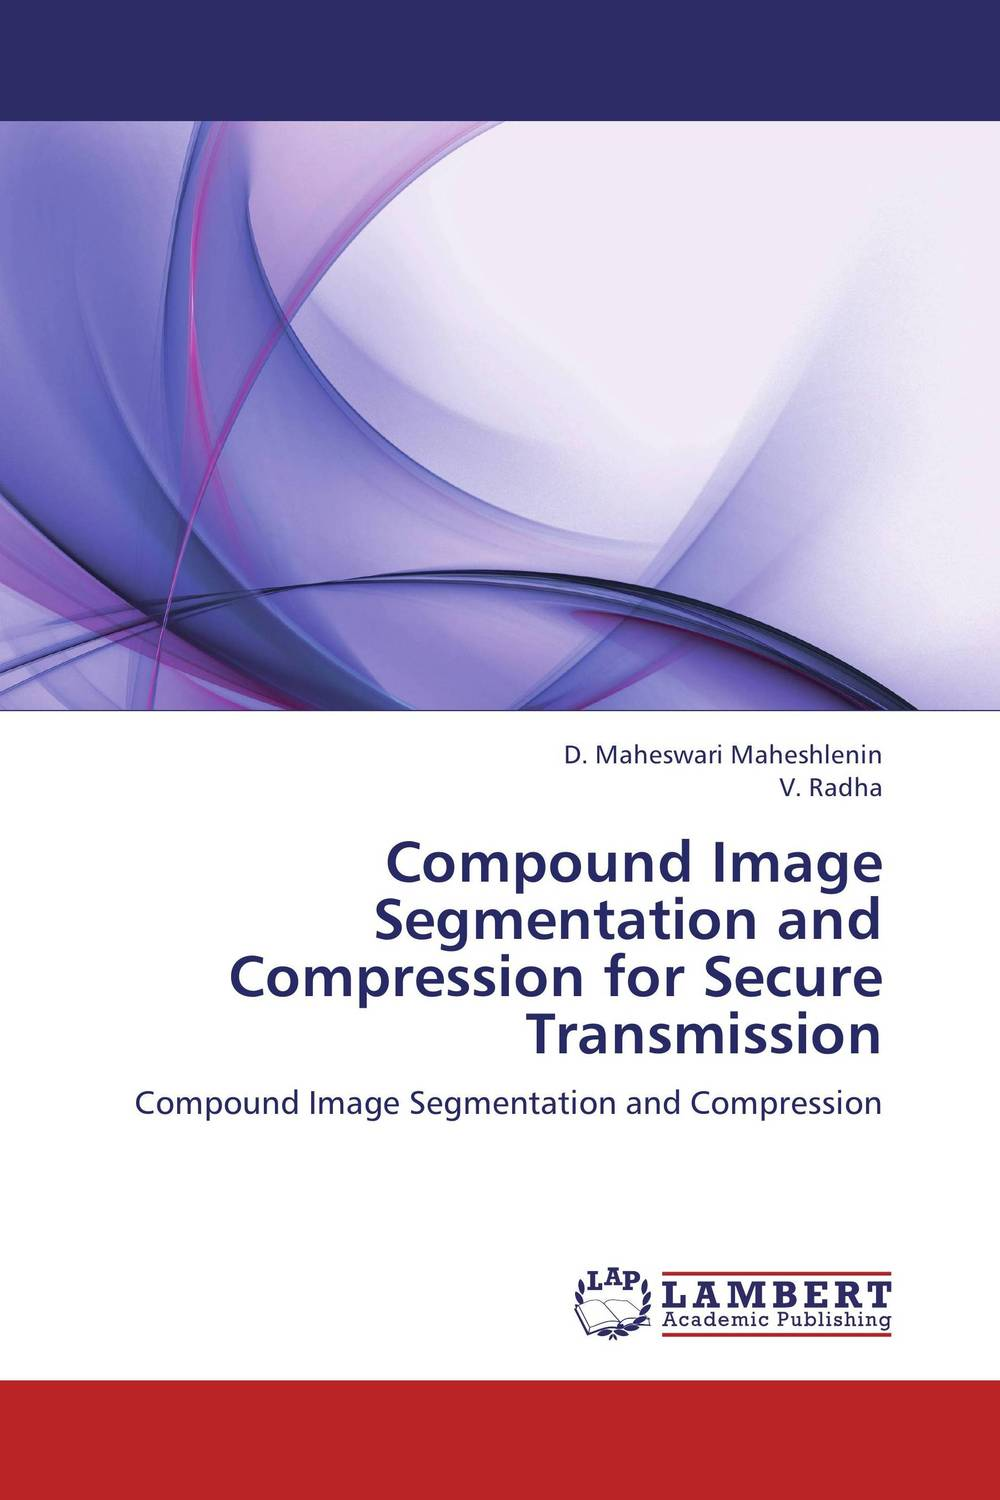 купить Compound Image Segmentation and Compression for Secure Transmission недорого